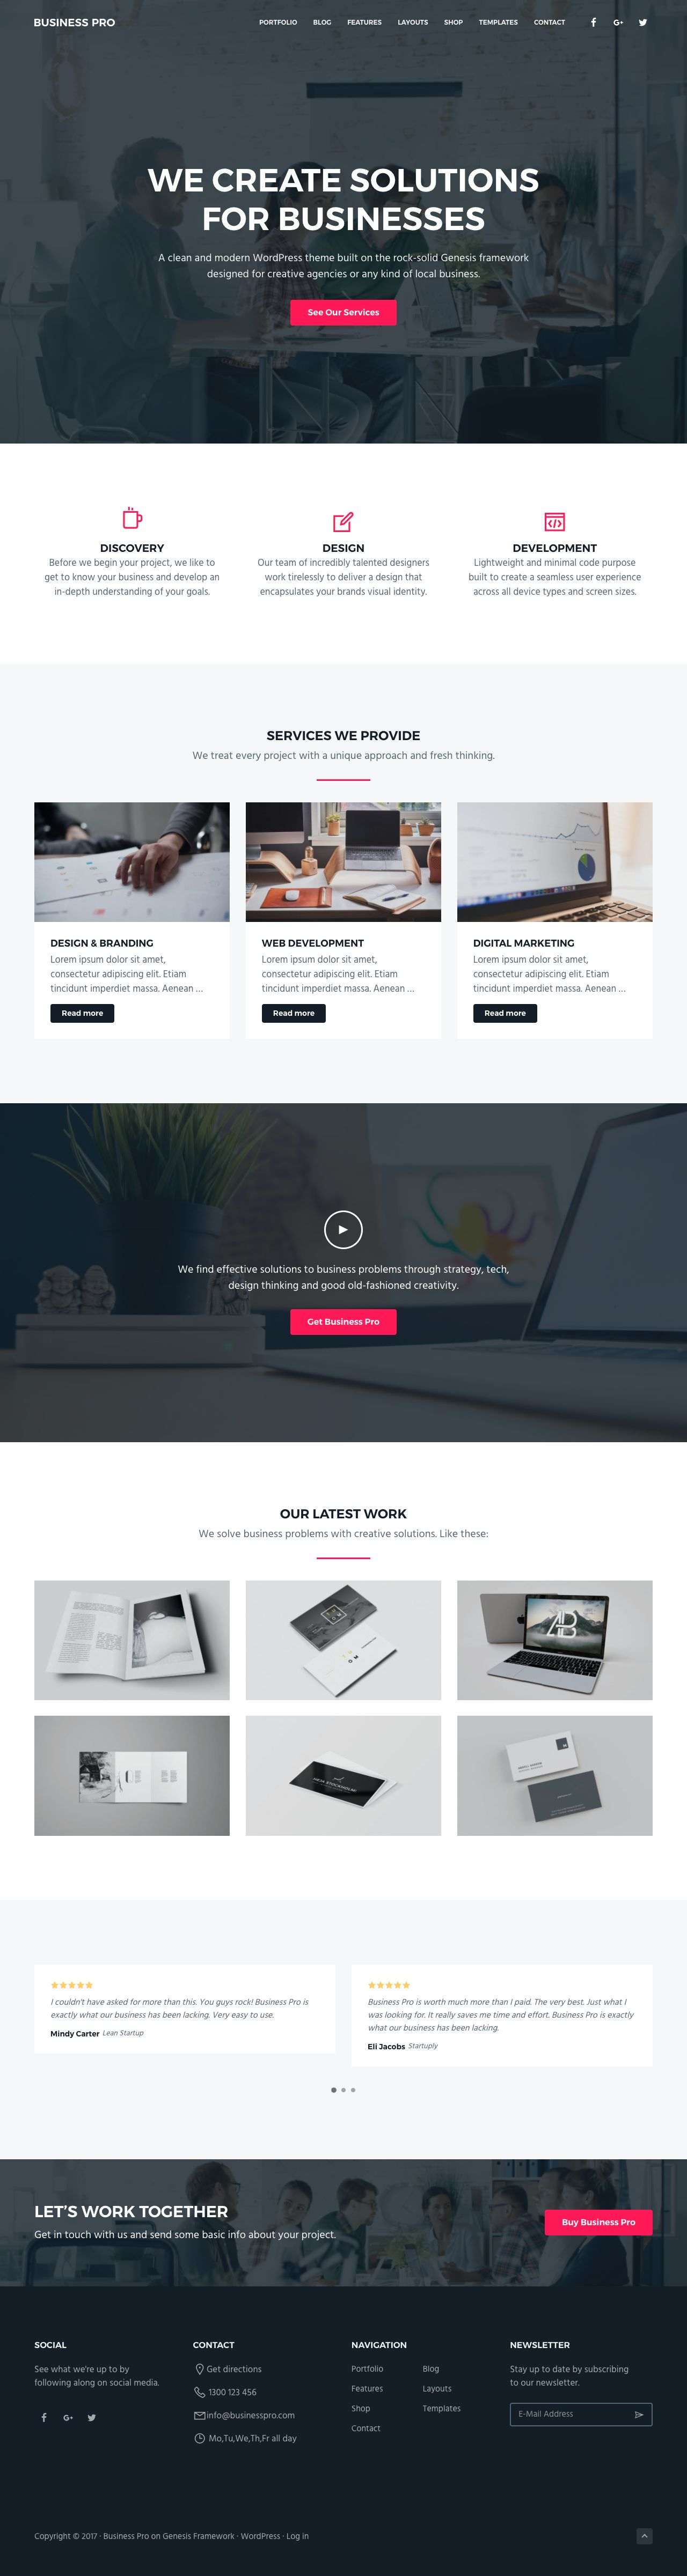 Business Pro WordPress Creative Agency Theme